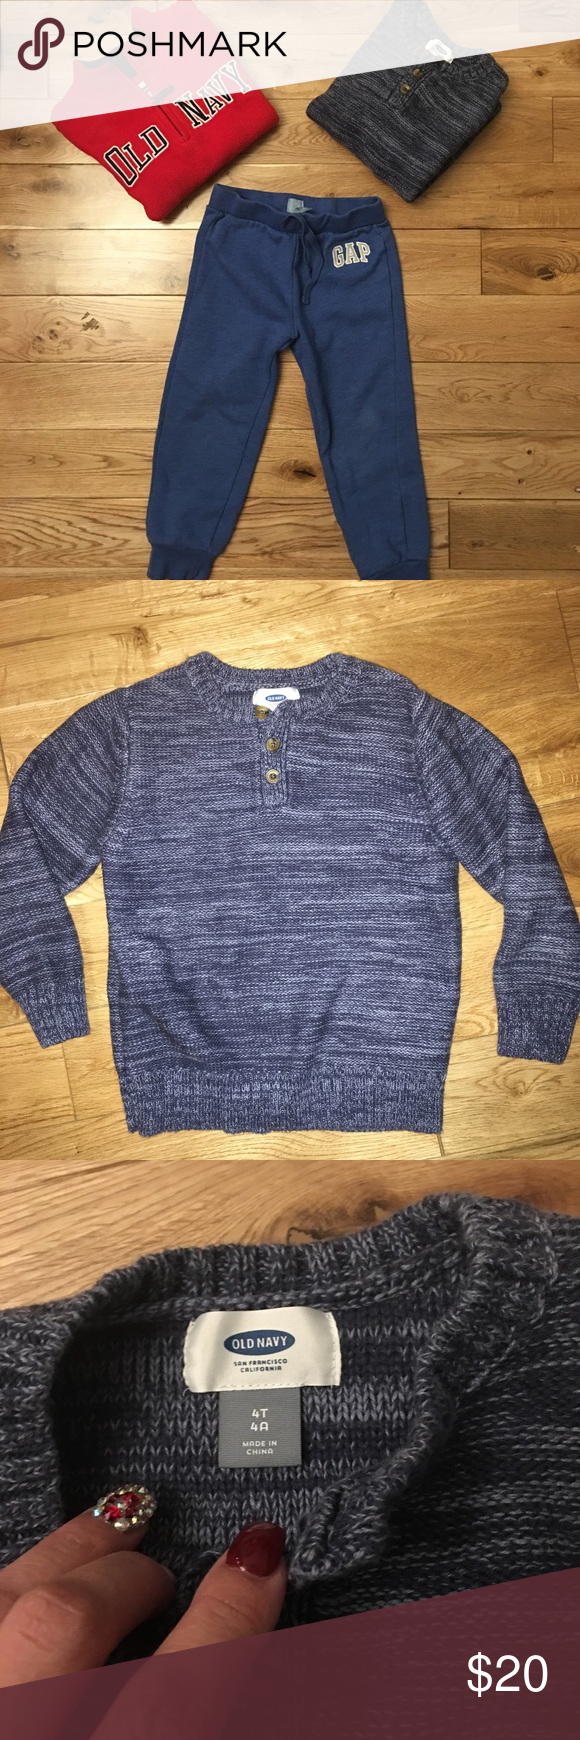 OLD NAVY / GAP BUNDEL Boys Size 4/4T | Fleece sweater, Sweat pants ...